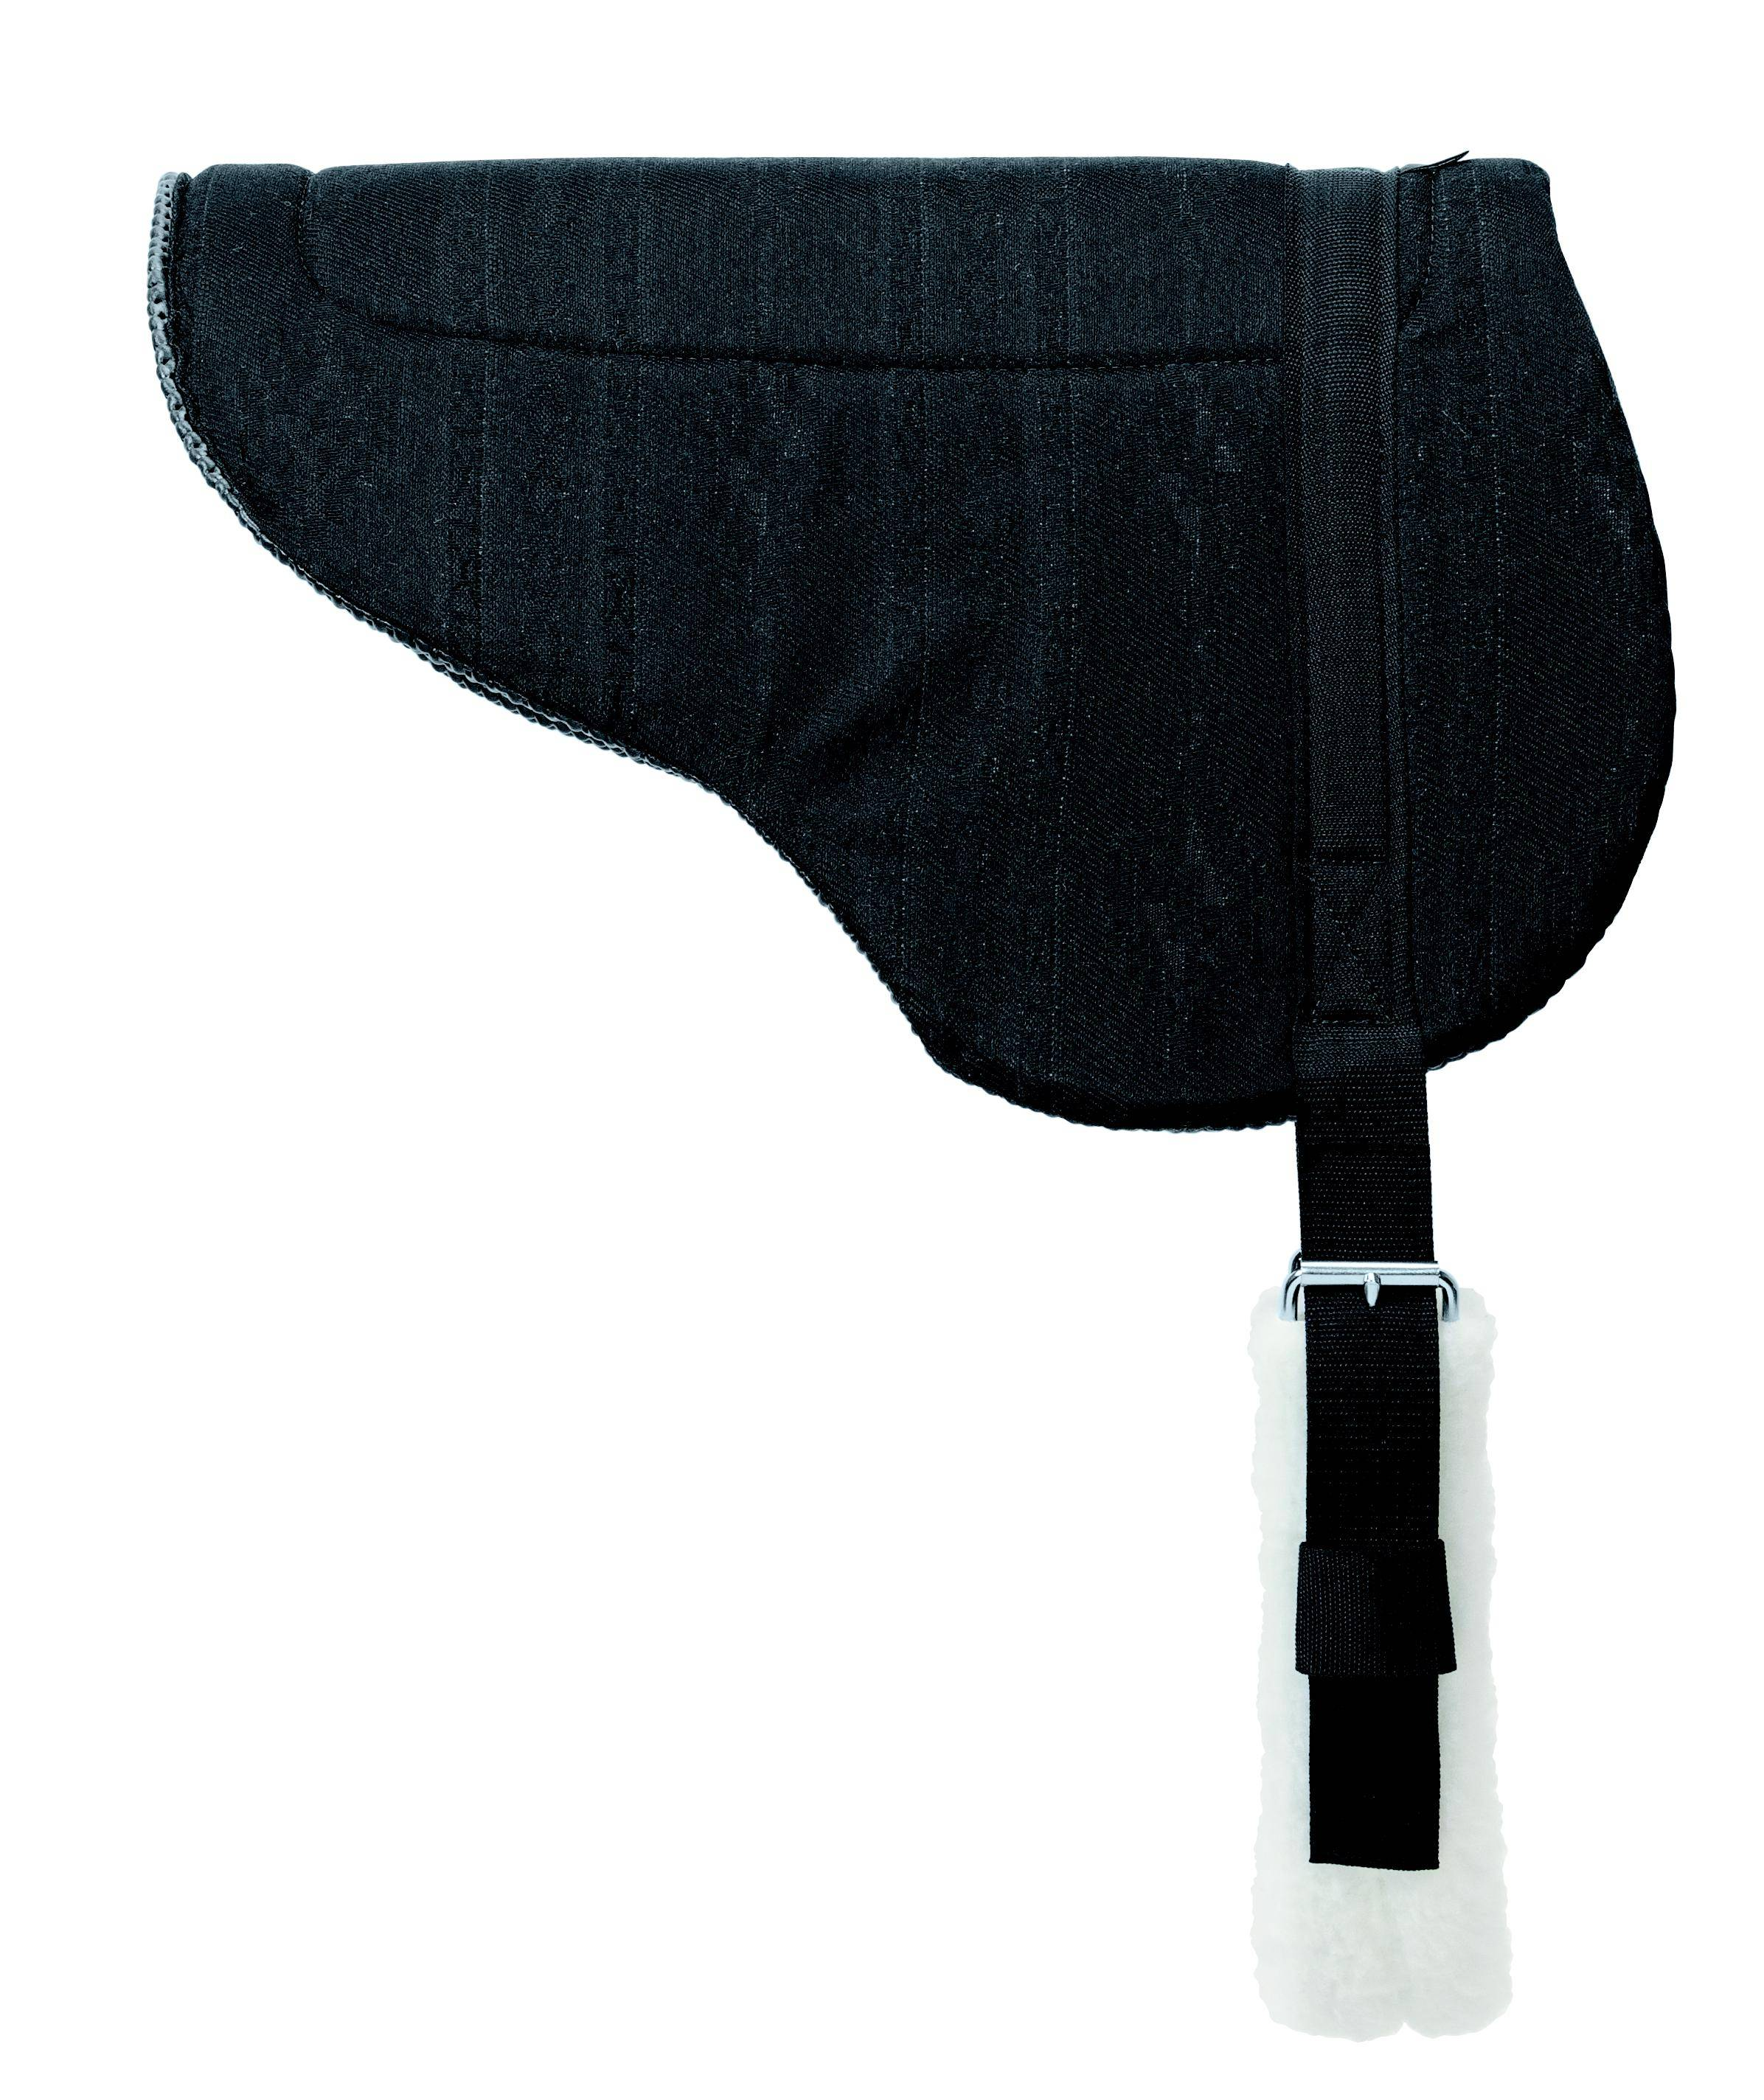 Weaver Herculon Tacky-Tack Bottom Bareback Pad - H9